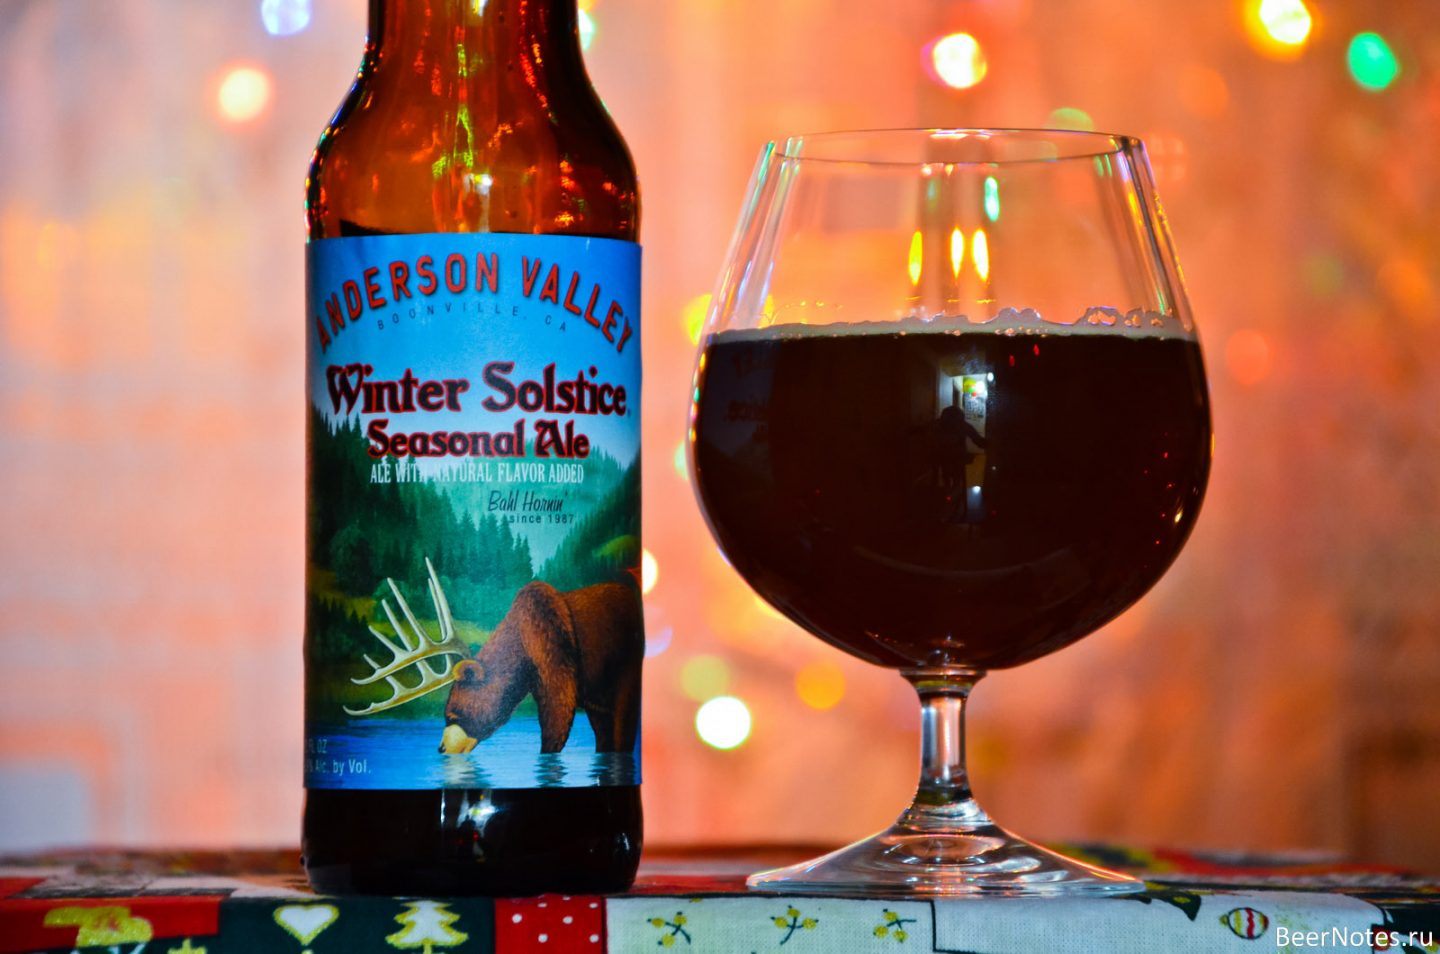 Пиво Anderson Valley Winter Solstice